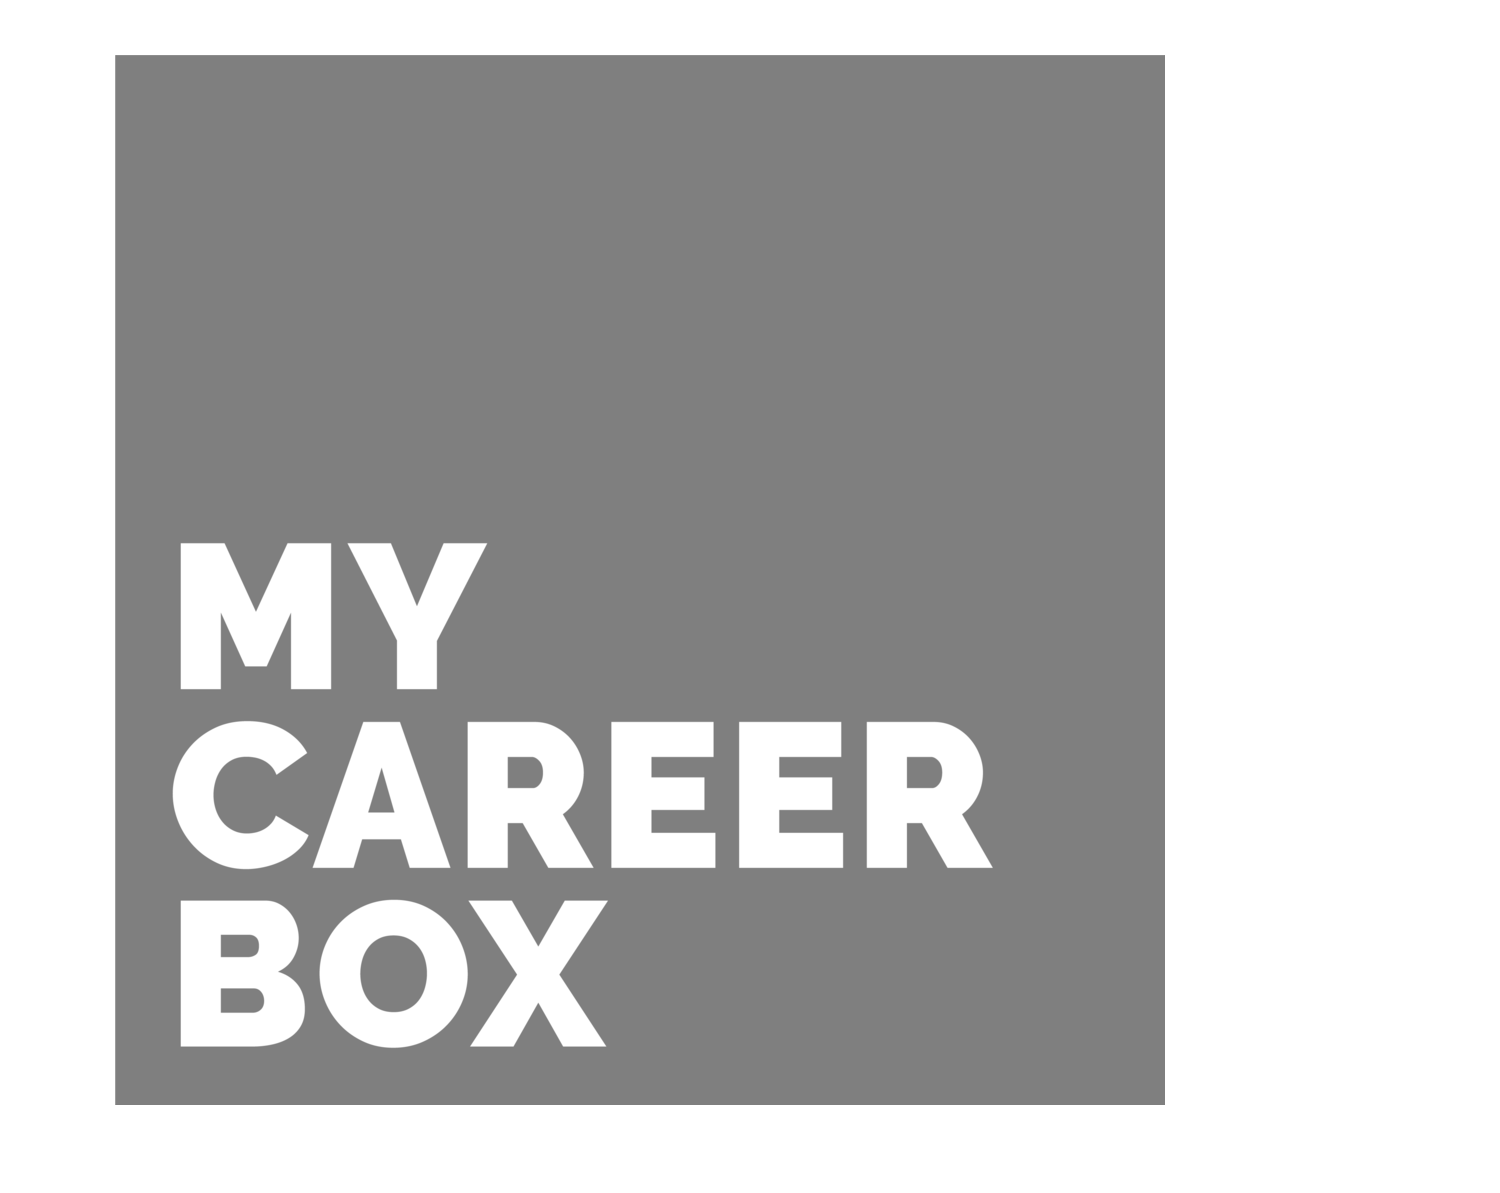 Career box my